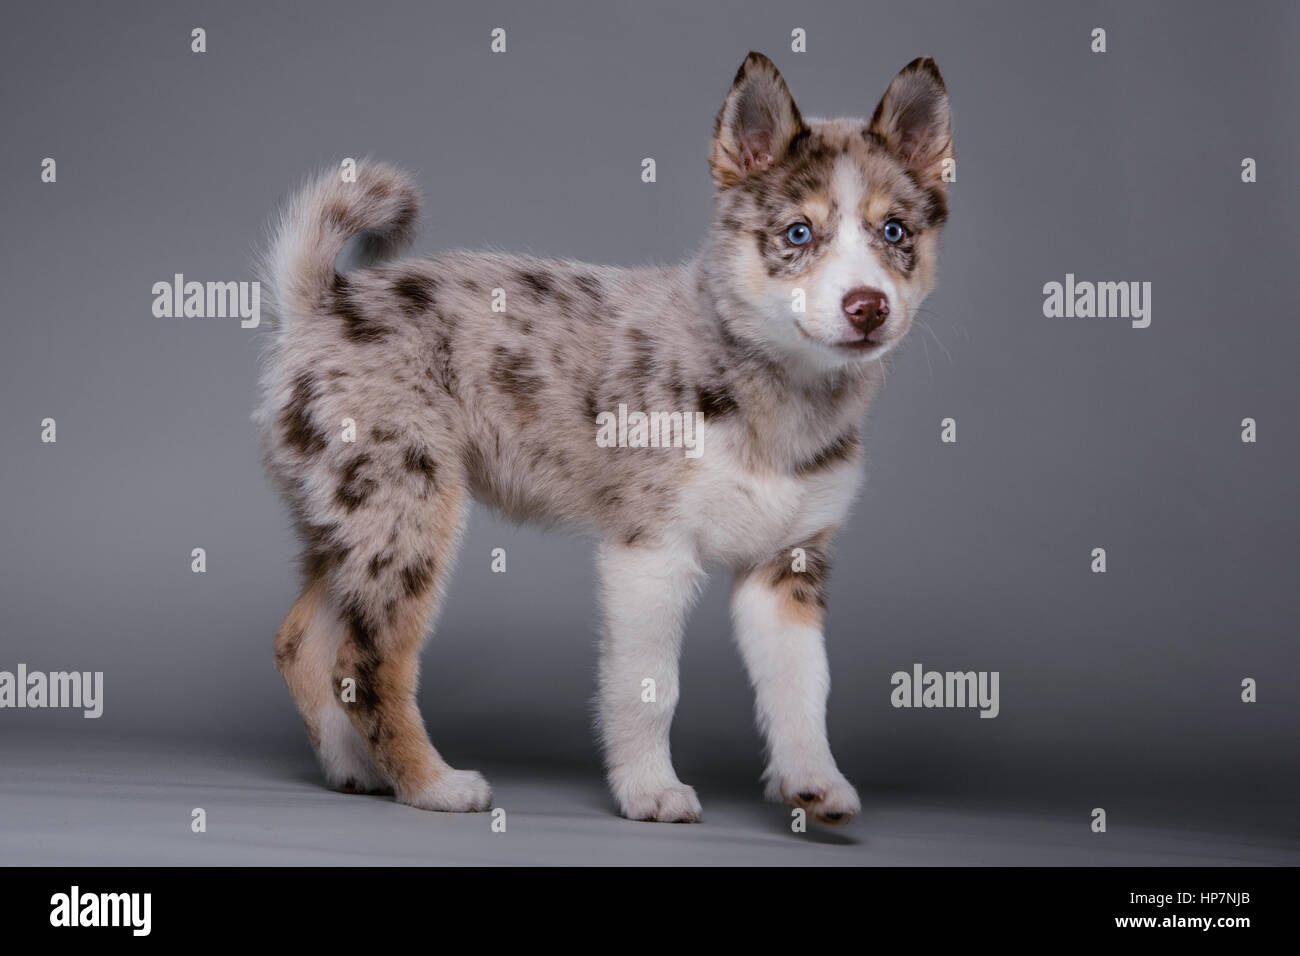 Full-body studio portrait of a cute brown and white pomsky puppy looking at camera. Stock Photo